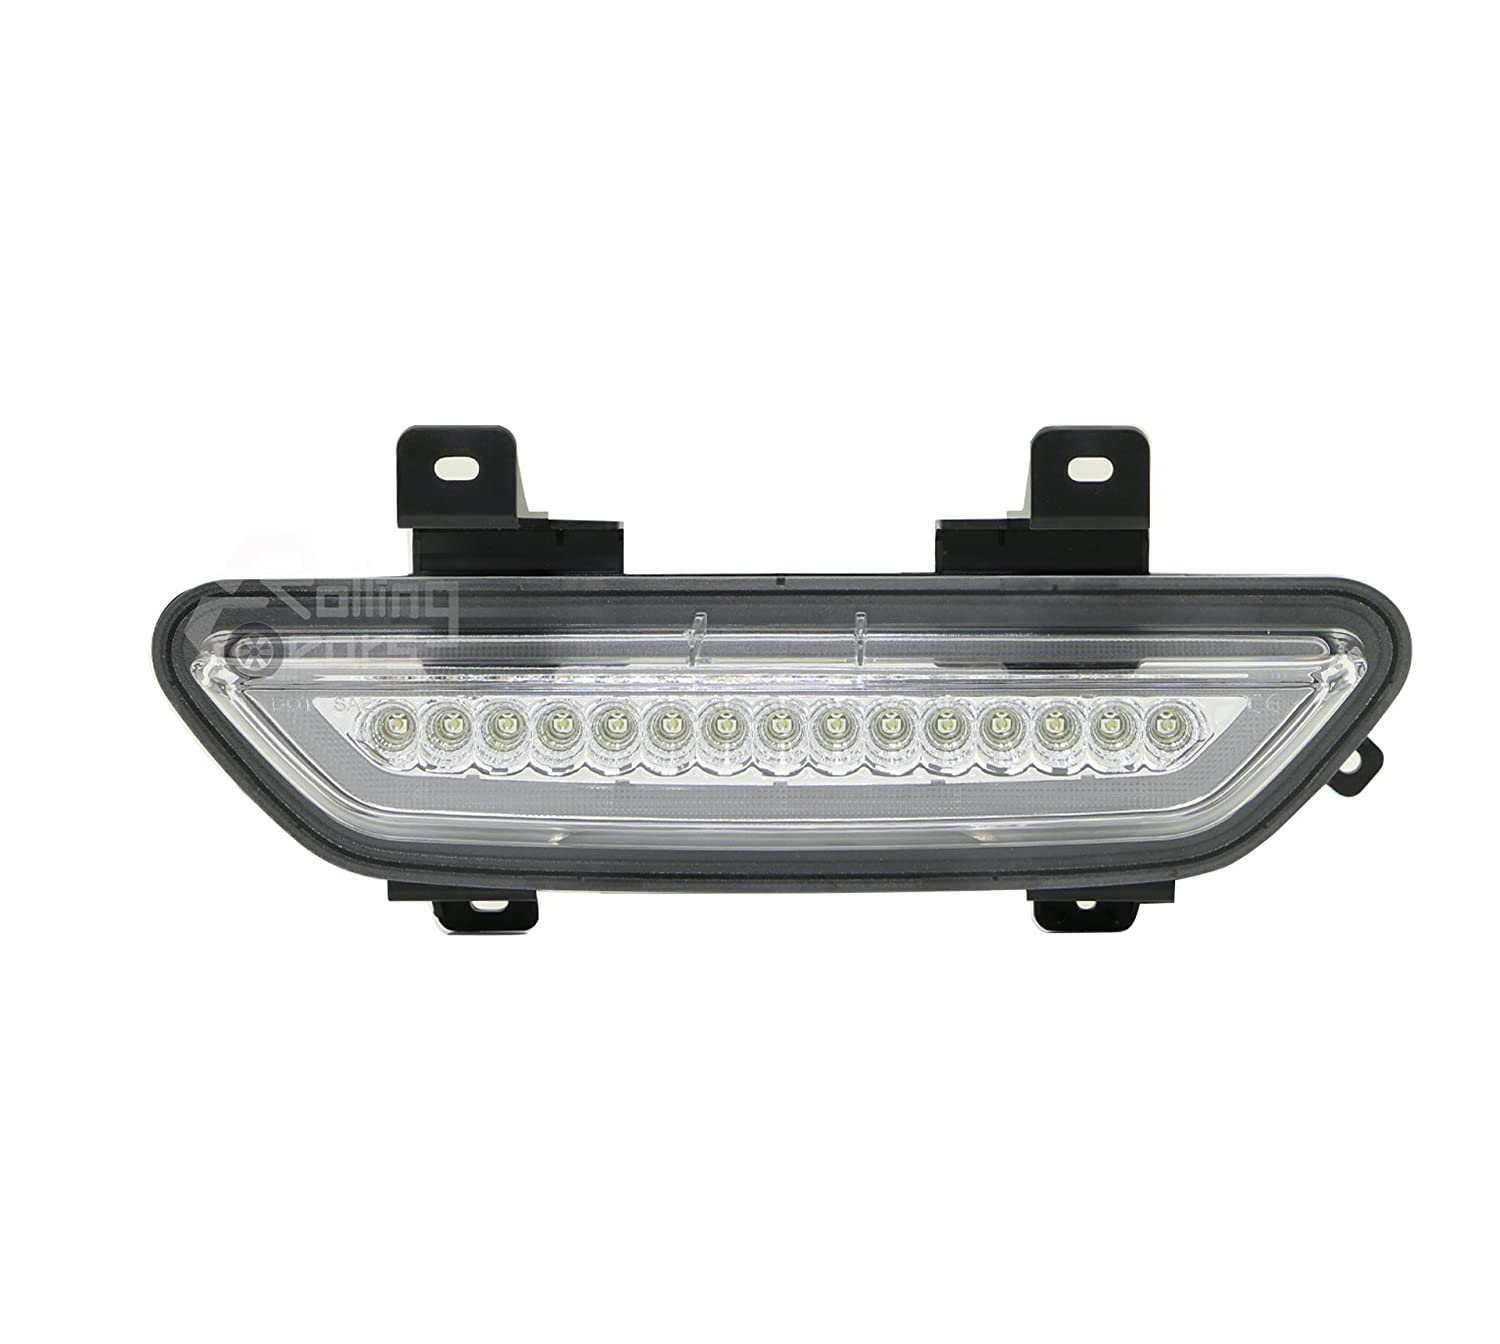 Led All In One For Ford Mustang Mk6 2015 2018 Rear Fog 1988 Lights Tail Brake And Backup Reverse Light Function Europe Style Automotive